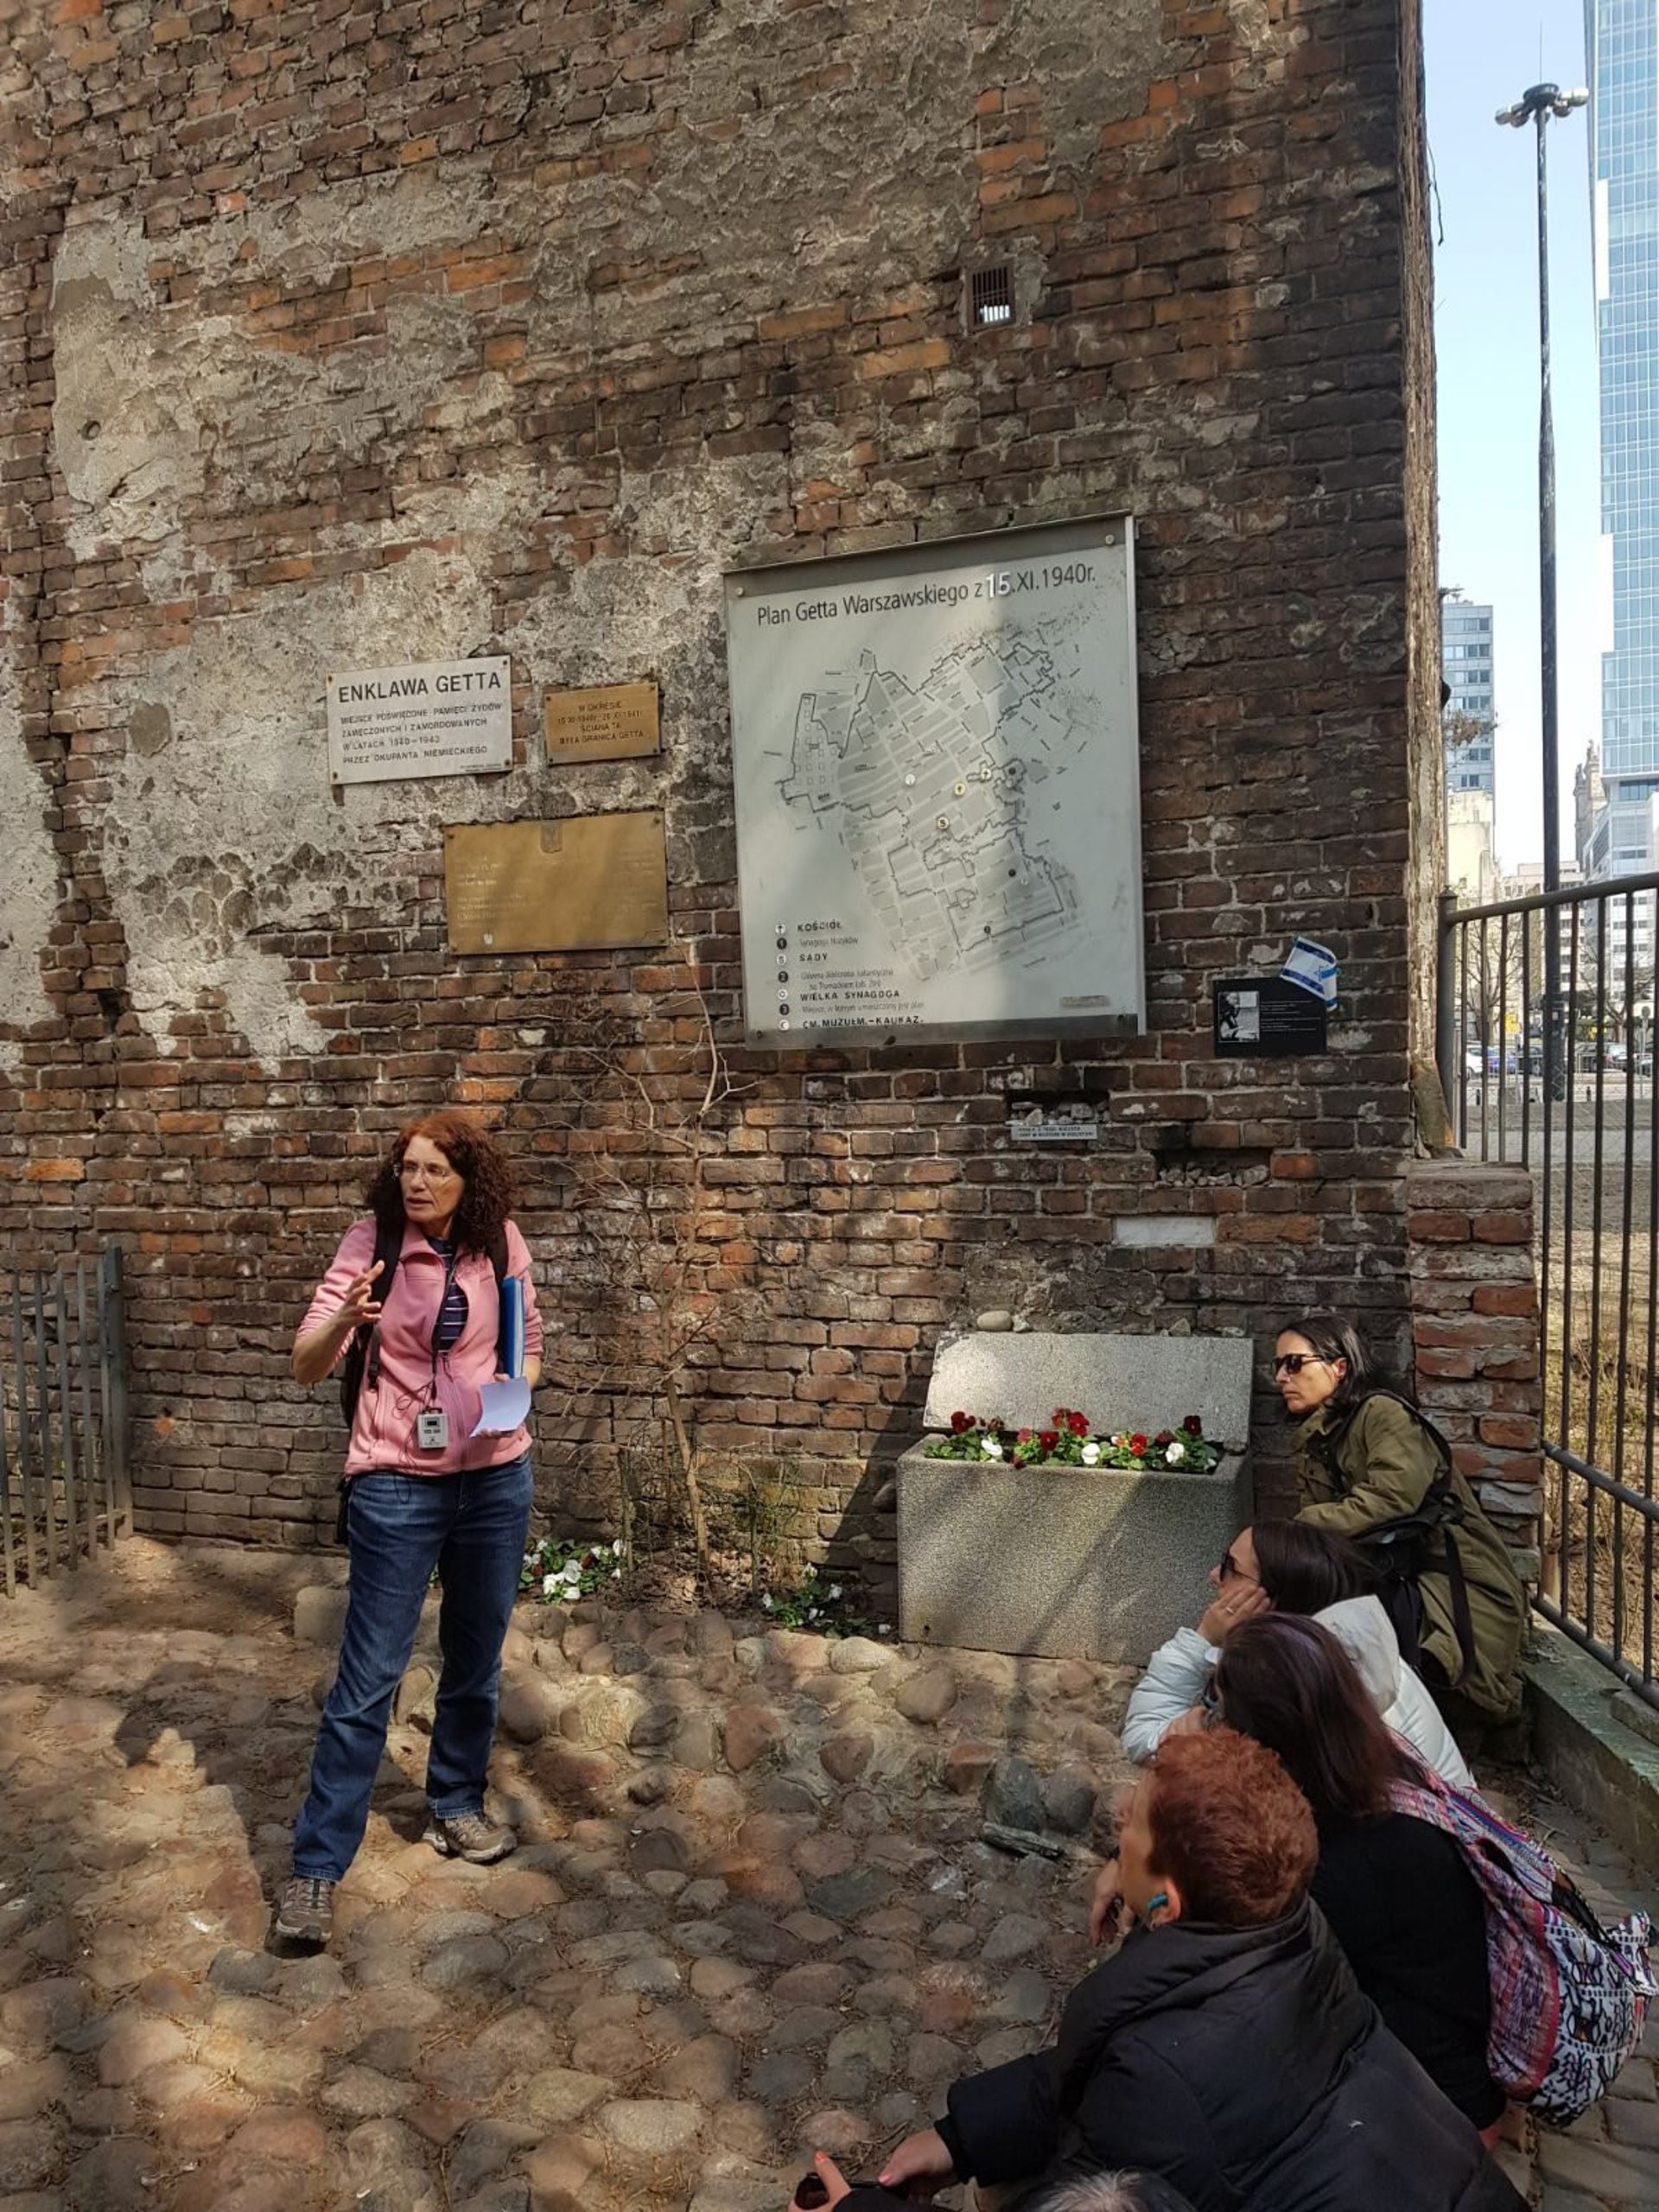 Members of Our Sisters We Do Seek visiting the remains of the Warsaw ghetto, April 2018.